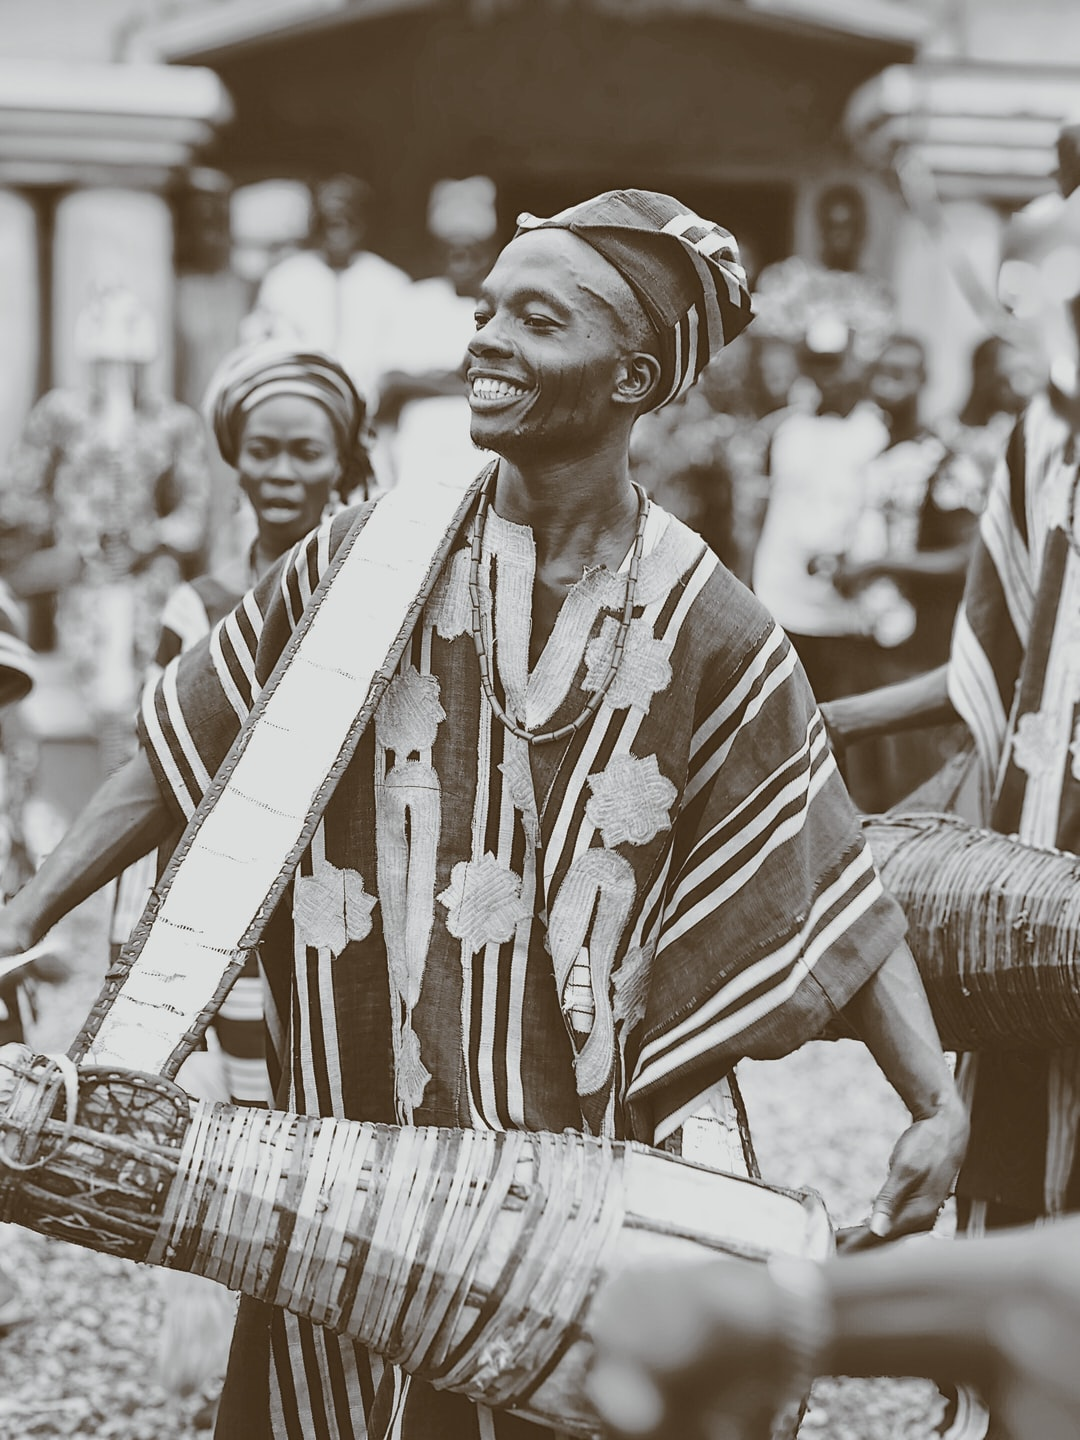 Couple of weeks back , I took a trip down to my village , I have only been there just three times but thins time around I went for a funeral. So sad but it was a glorious exit and I saw this beautiful cultural troop who came to perform the traditional dance of my culture and background . It felt heavenly and I decided to take a shot of this African Drummer